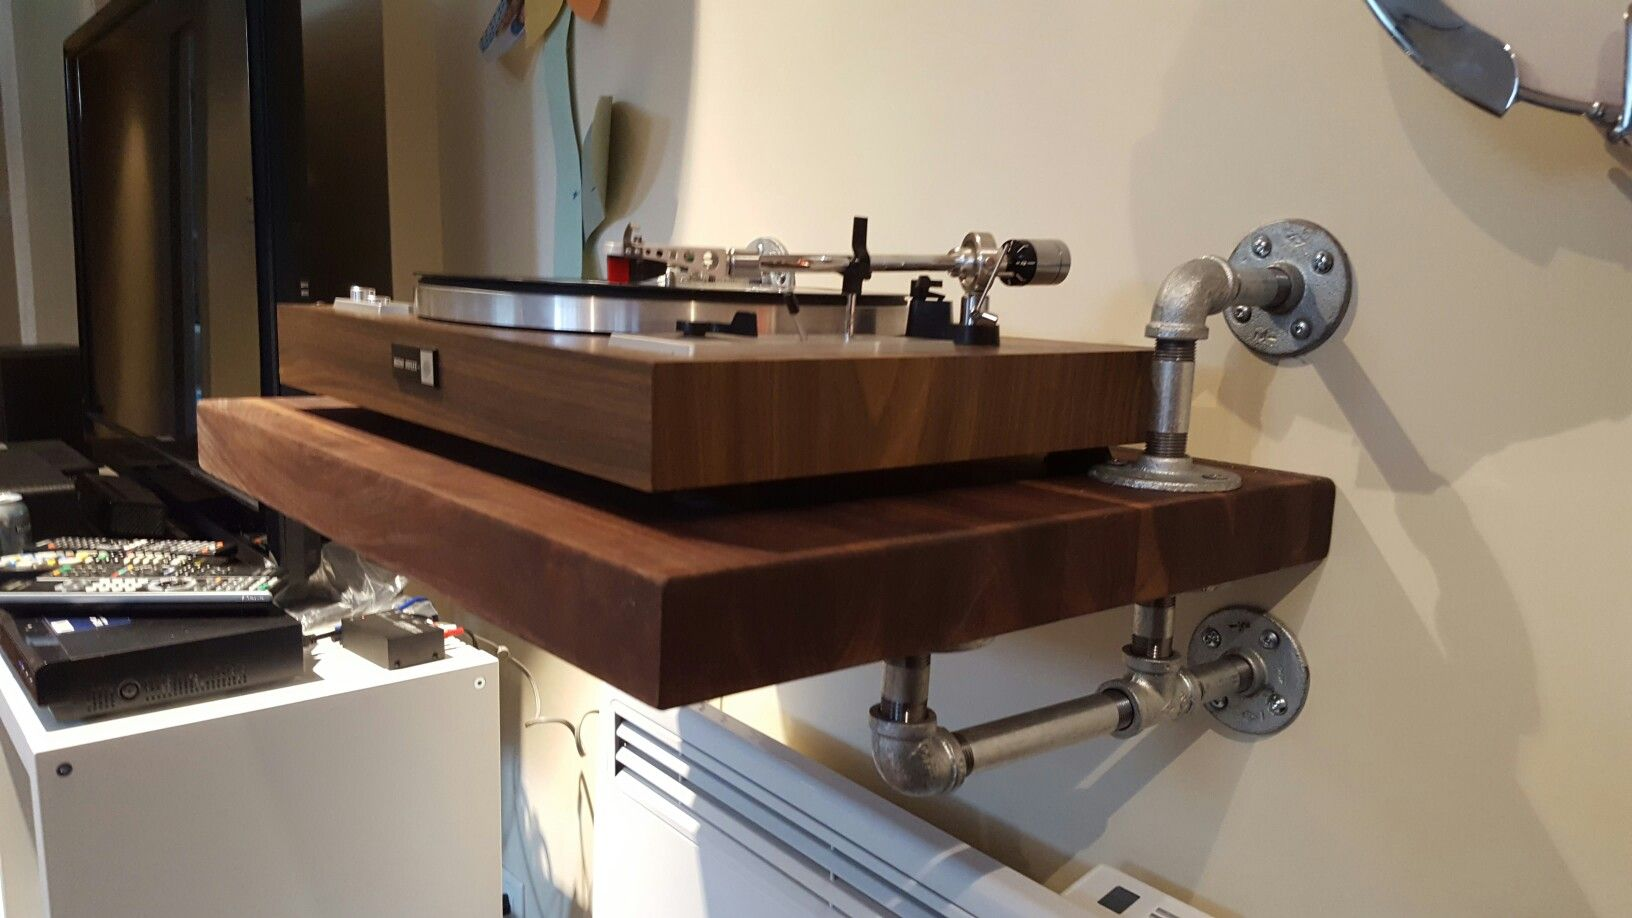 Plattenregal Diy Diy Turntable Wall Mount Hifi In 2019 Plattenspieler